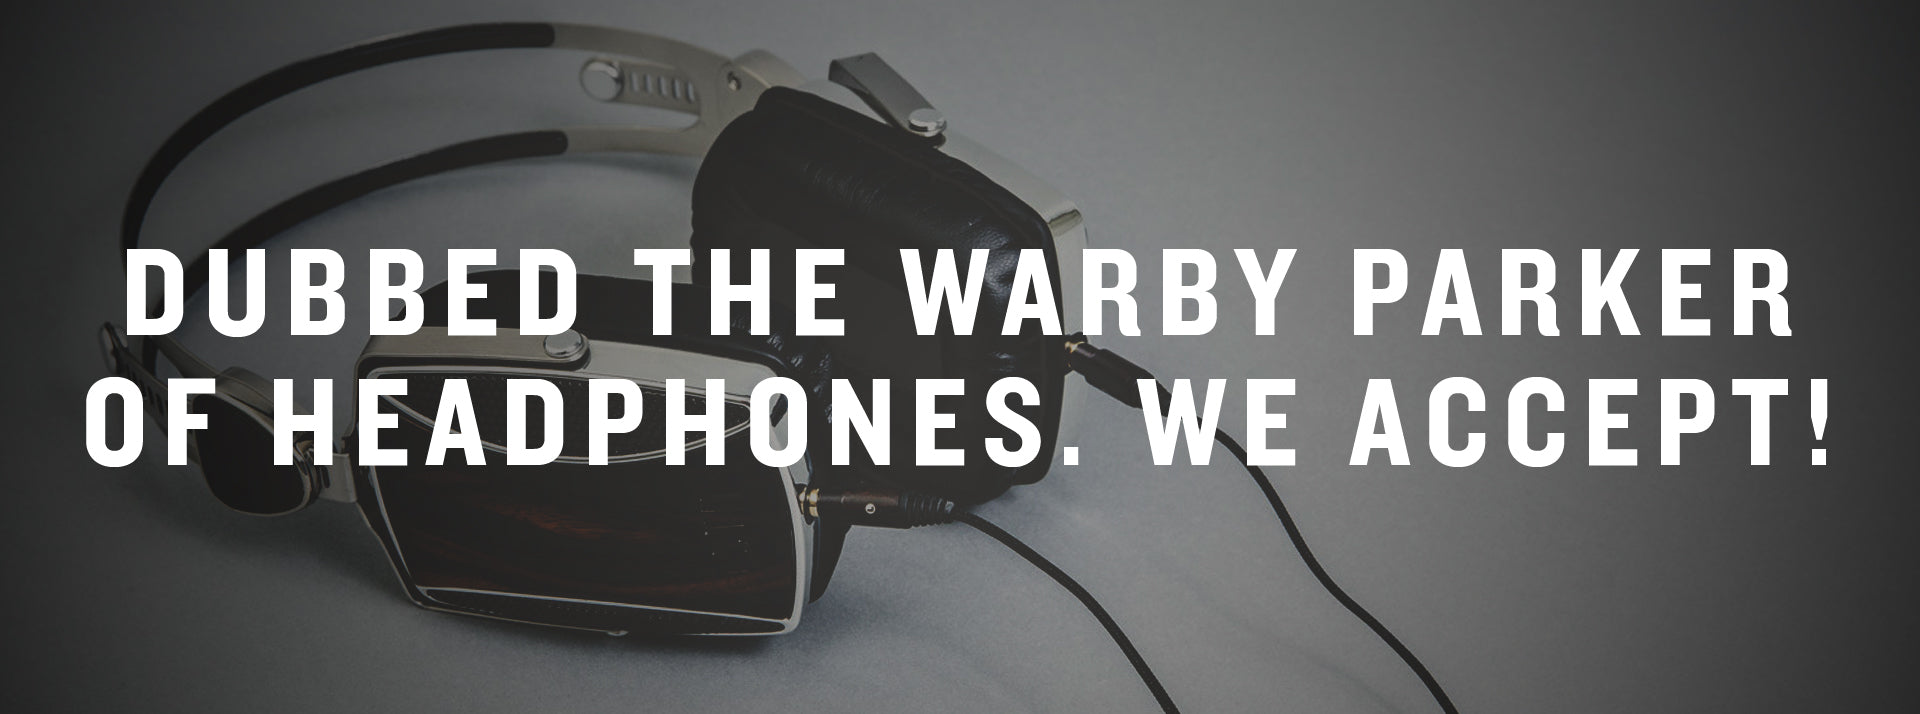 TECH CRUNCH FEATURES LSTN, DUBBED THE WARBY PARKER OF HEADPHONES